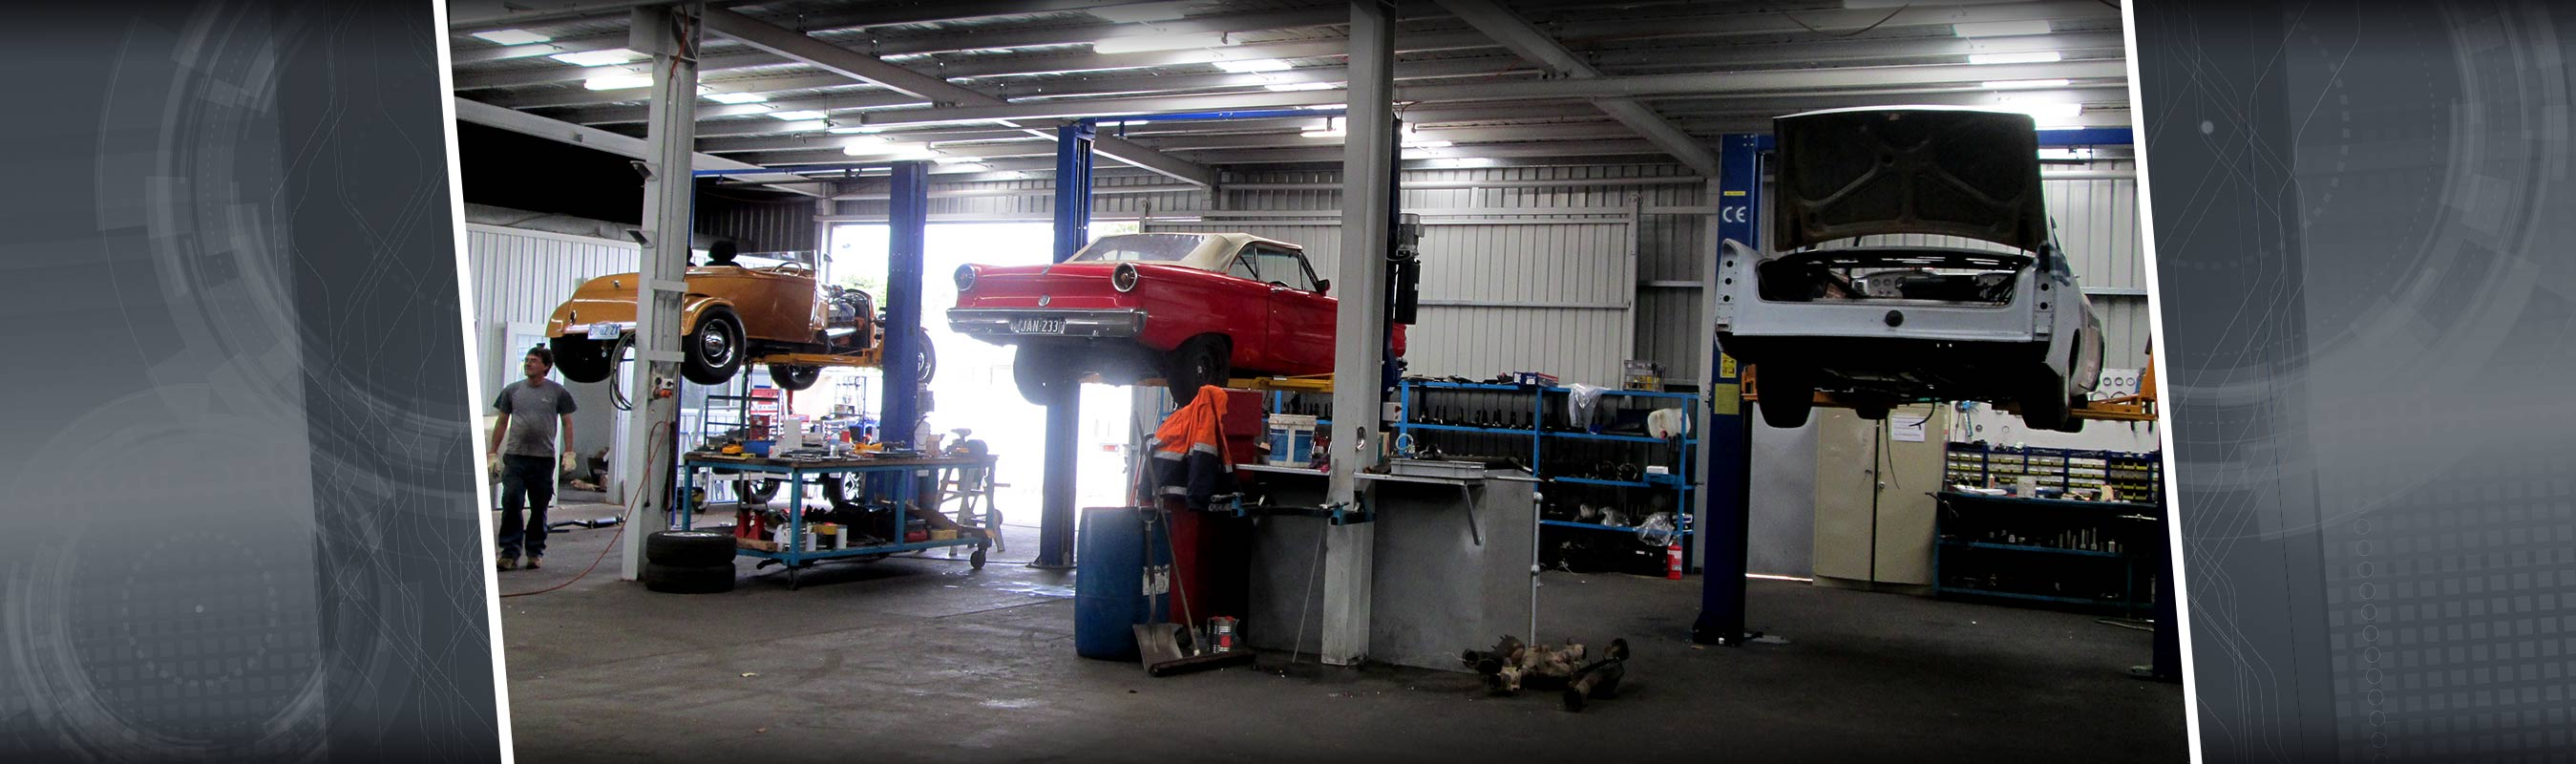 aikman engineering workshop with cars on hydraulic lift